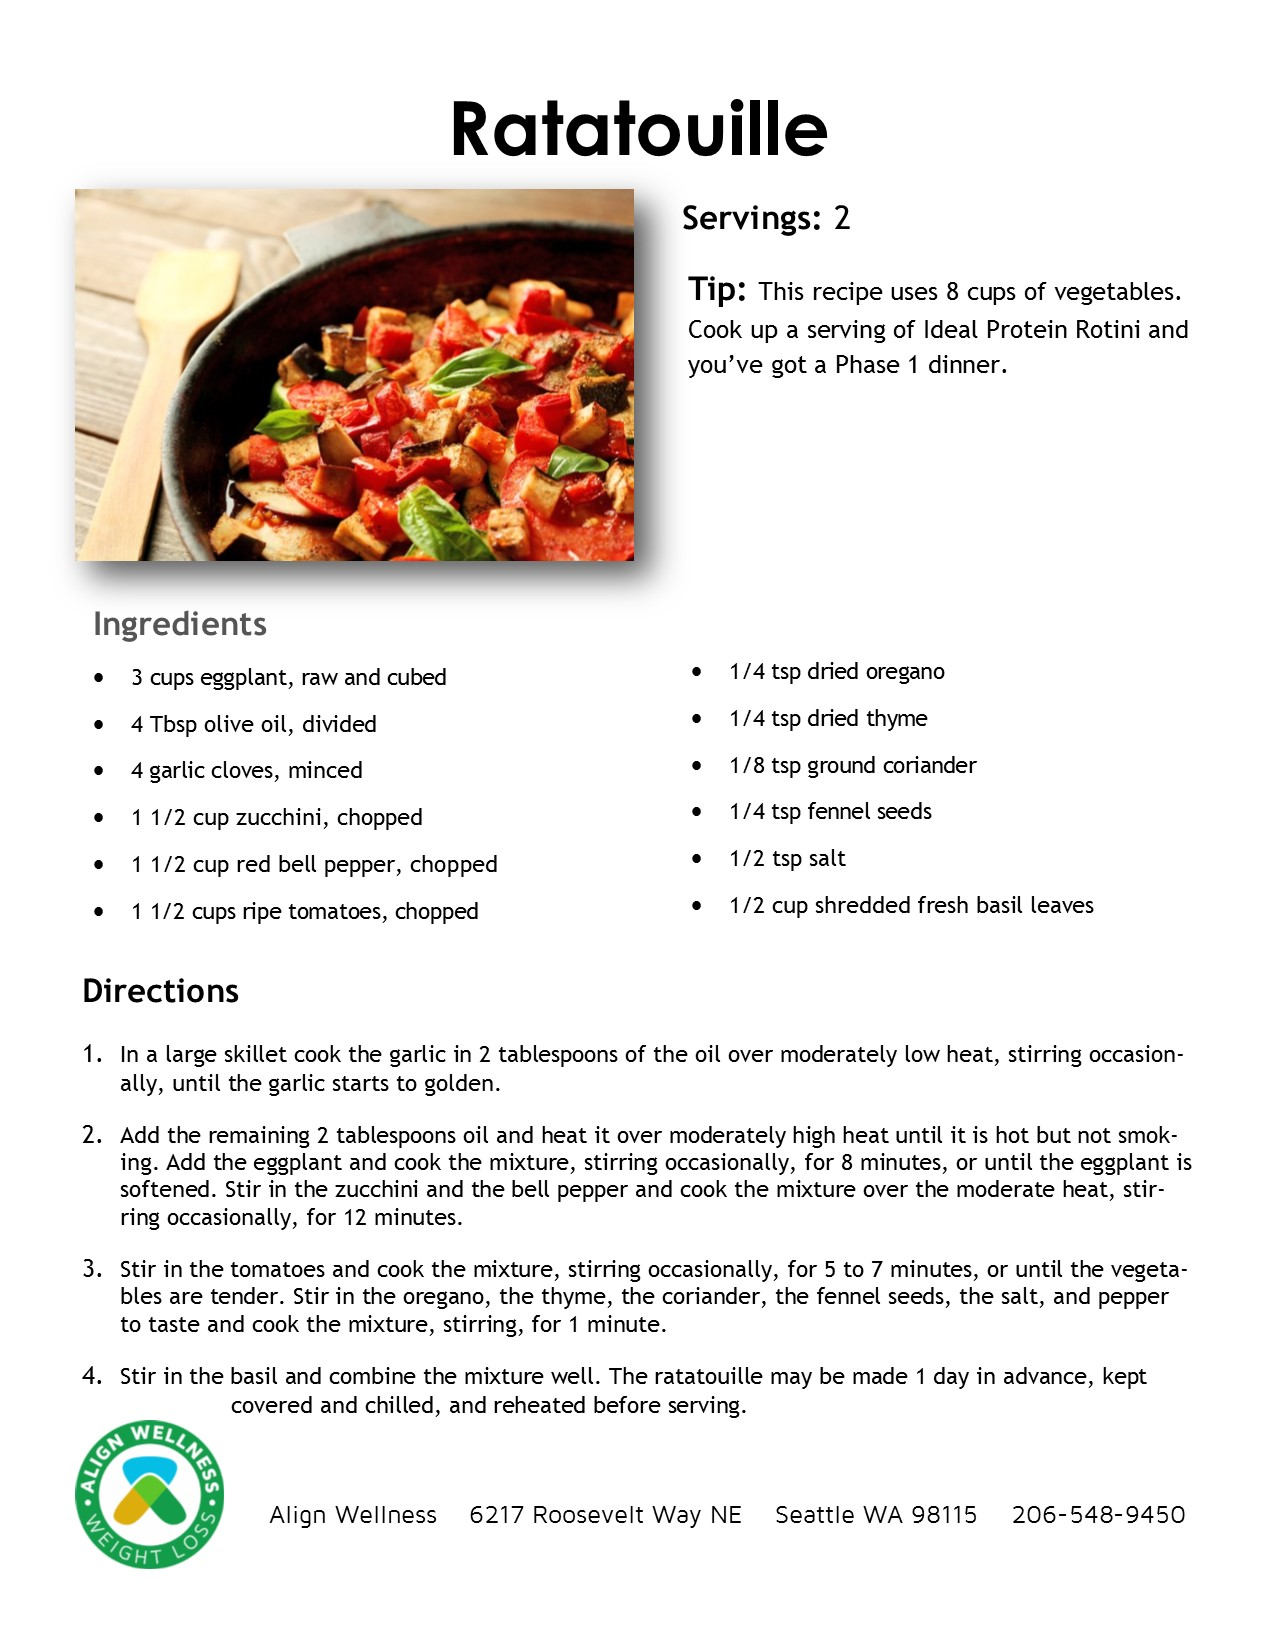 Ratatouille Ideal Protein Recipe